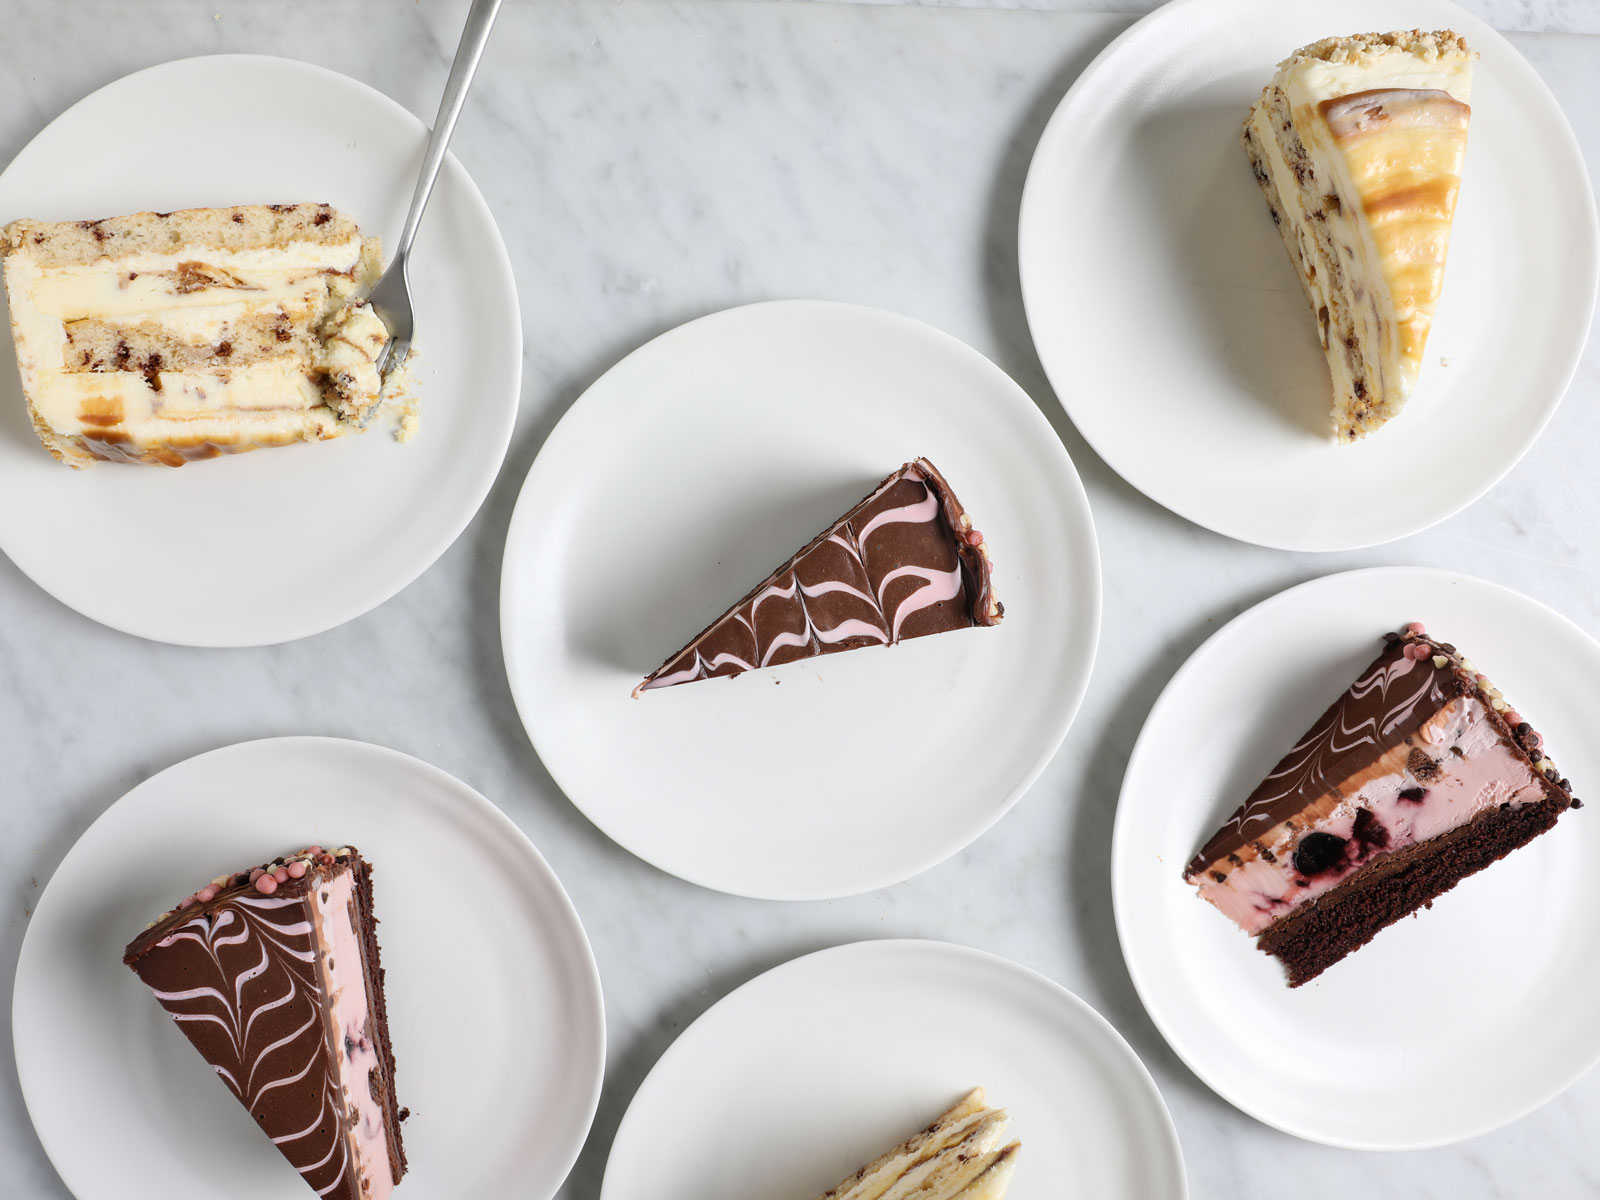 Cheesecake Factory's New Cheesecake Flavors